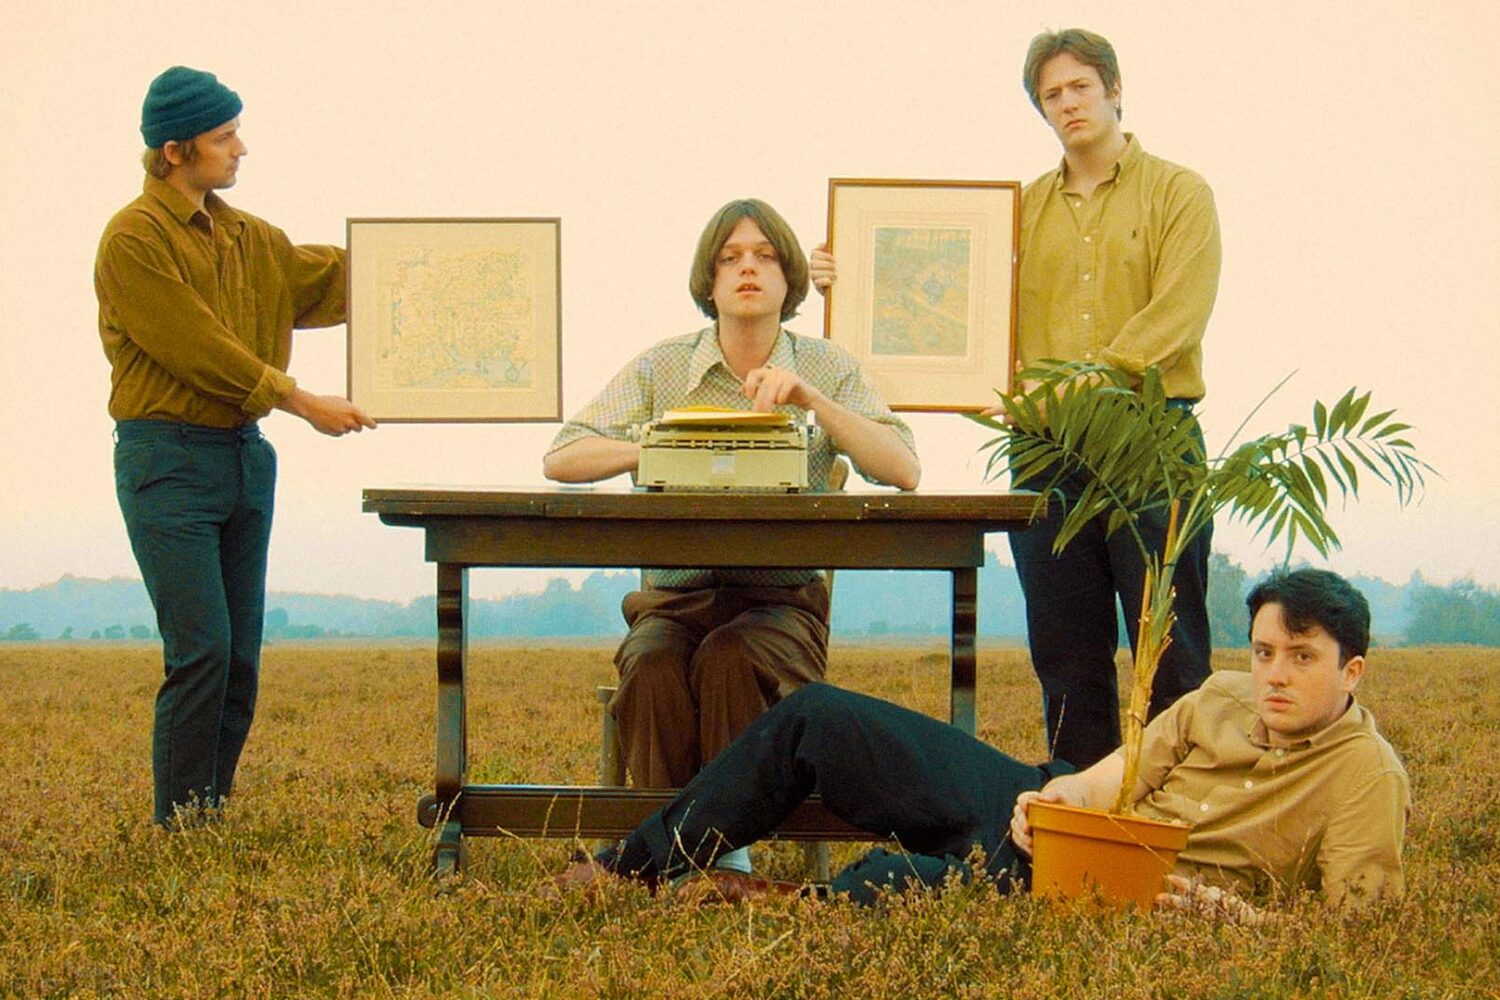 FUR unveil nostalgic, Wes Anderson-indebted video for 'If You Know That I'm Lonely'